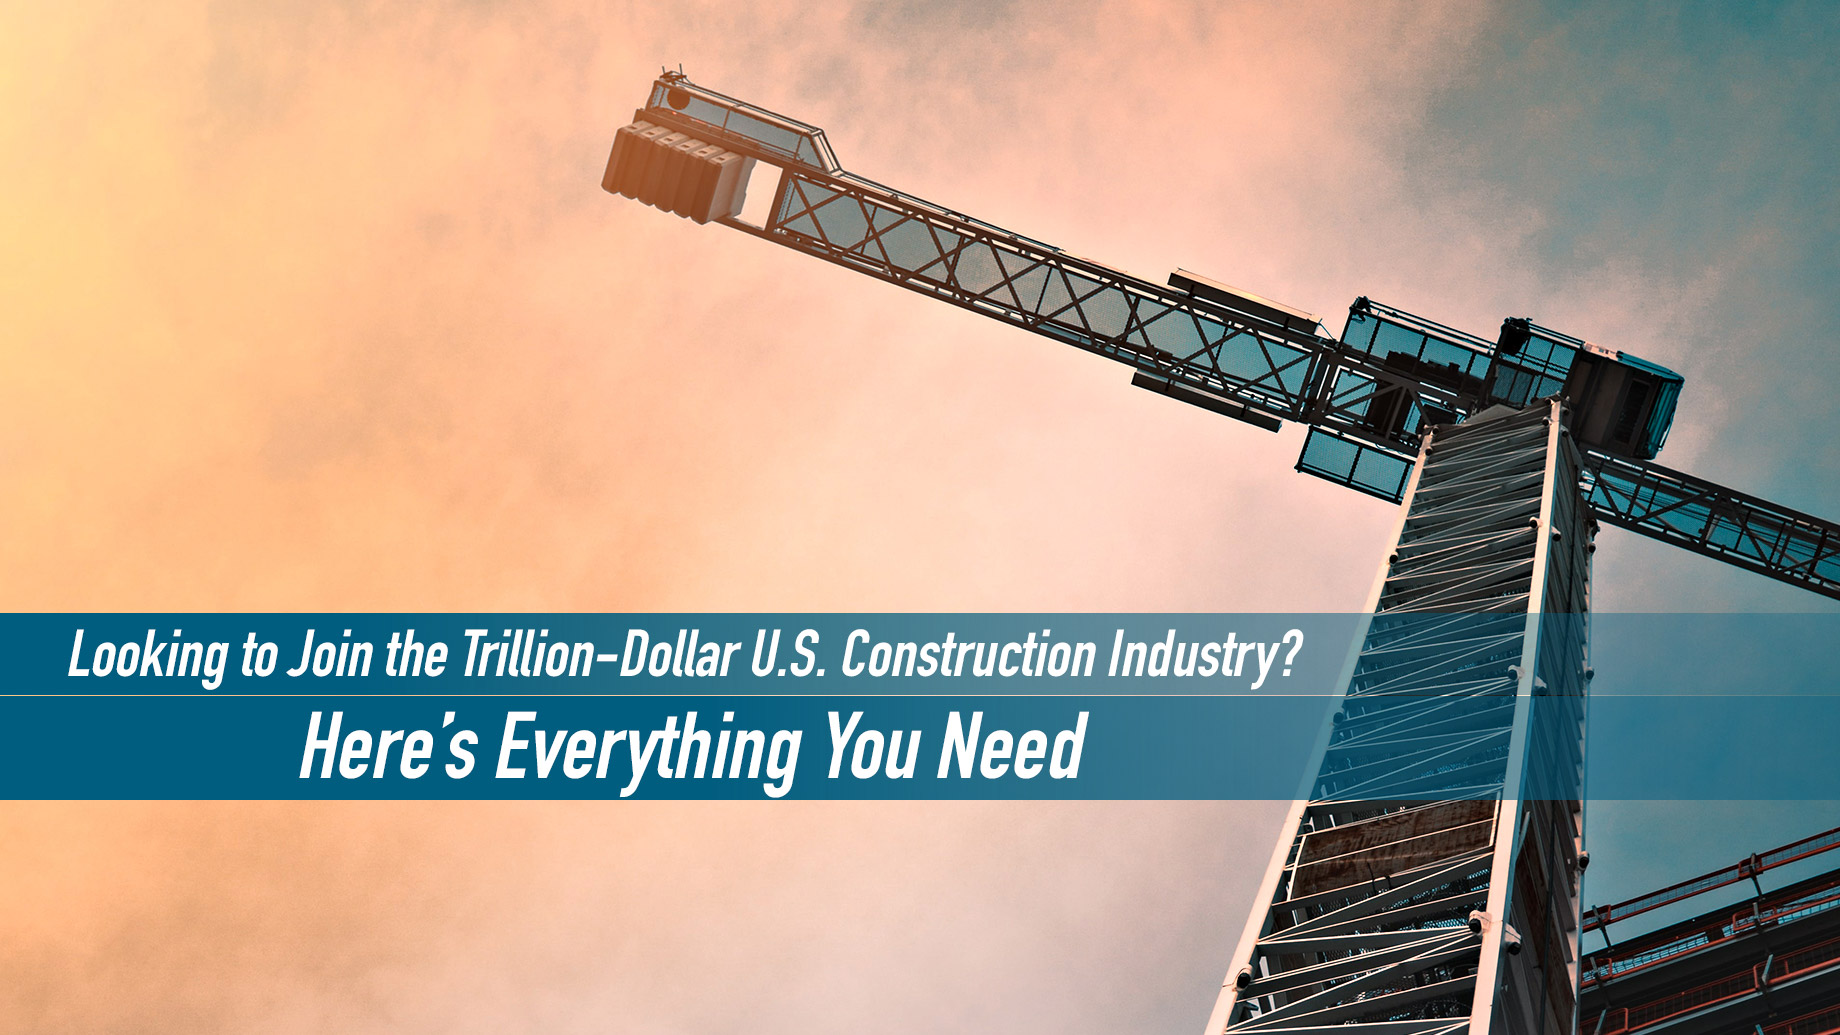 Looking to Join the Trillion-Dollar U.S. Construction Industry? Here's Everything You Need